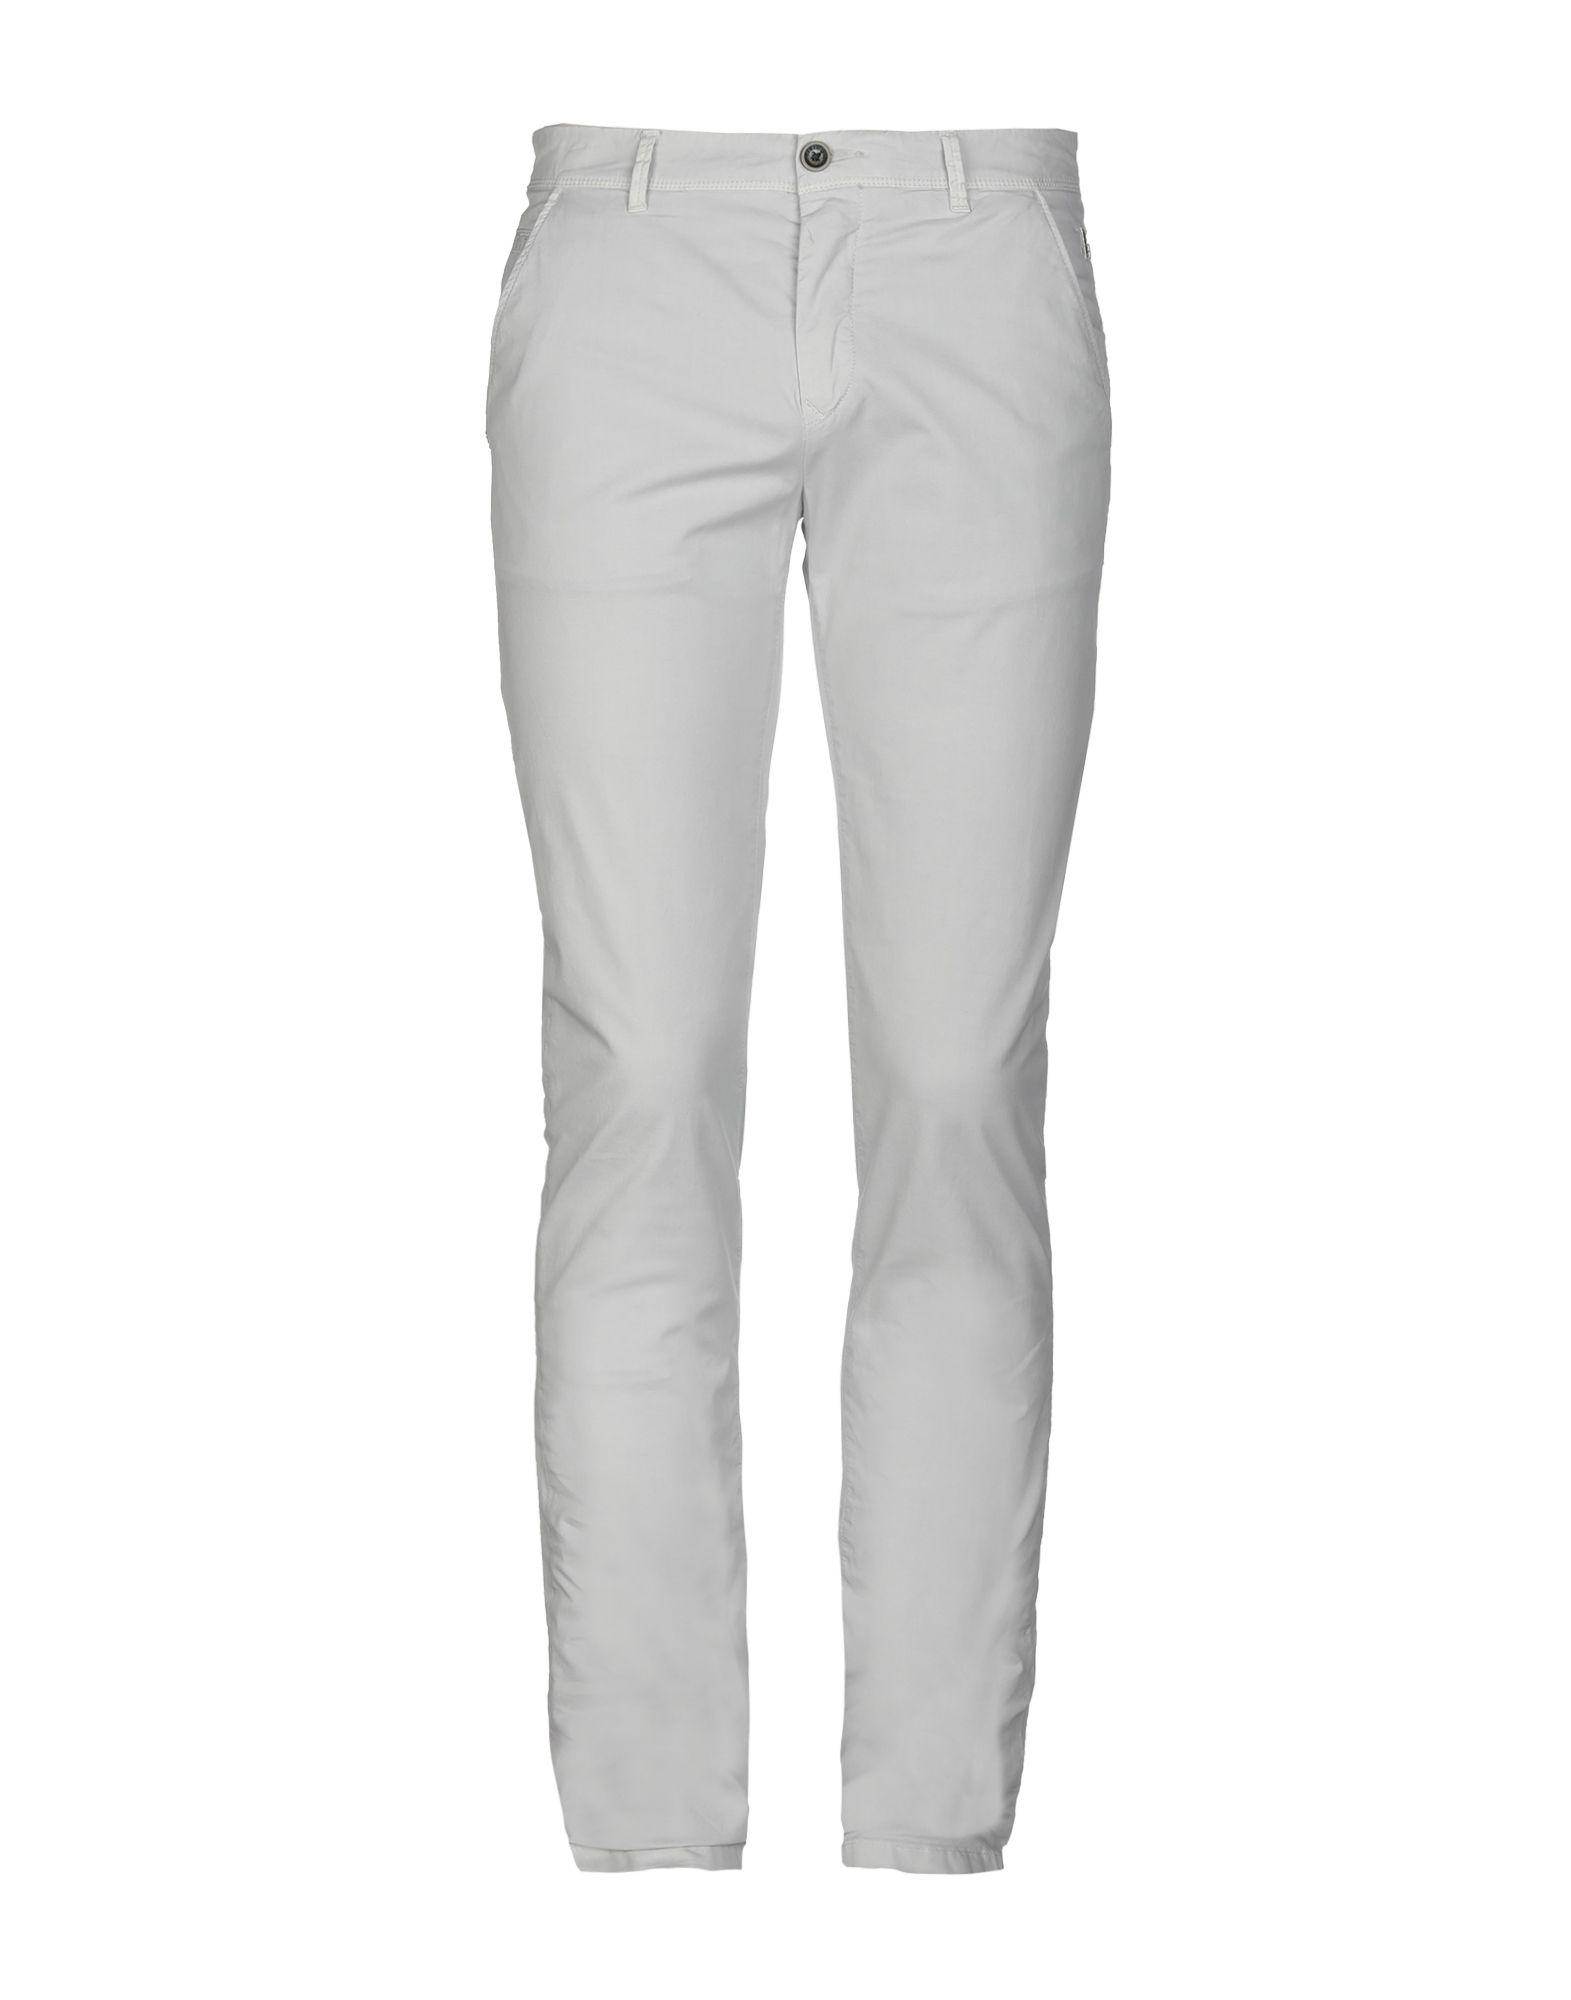 cc52c5d7 Lyst - Camouflage Ar And J. Casual Trouser in Gray for Men